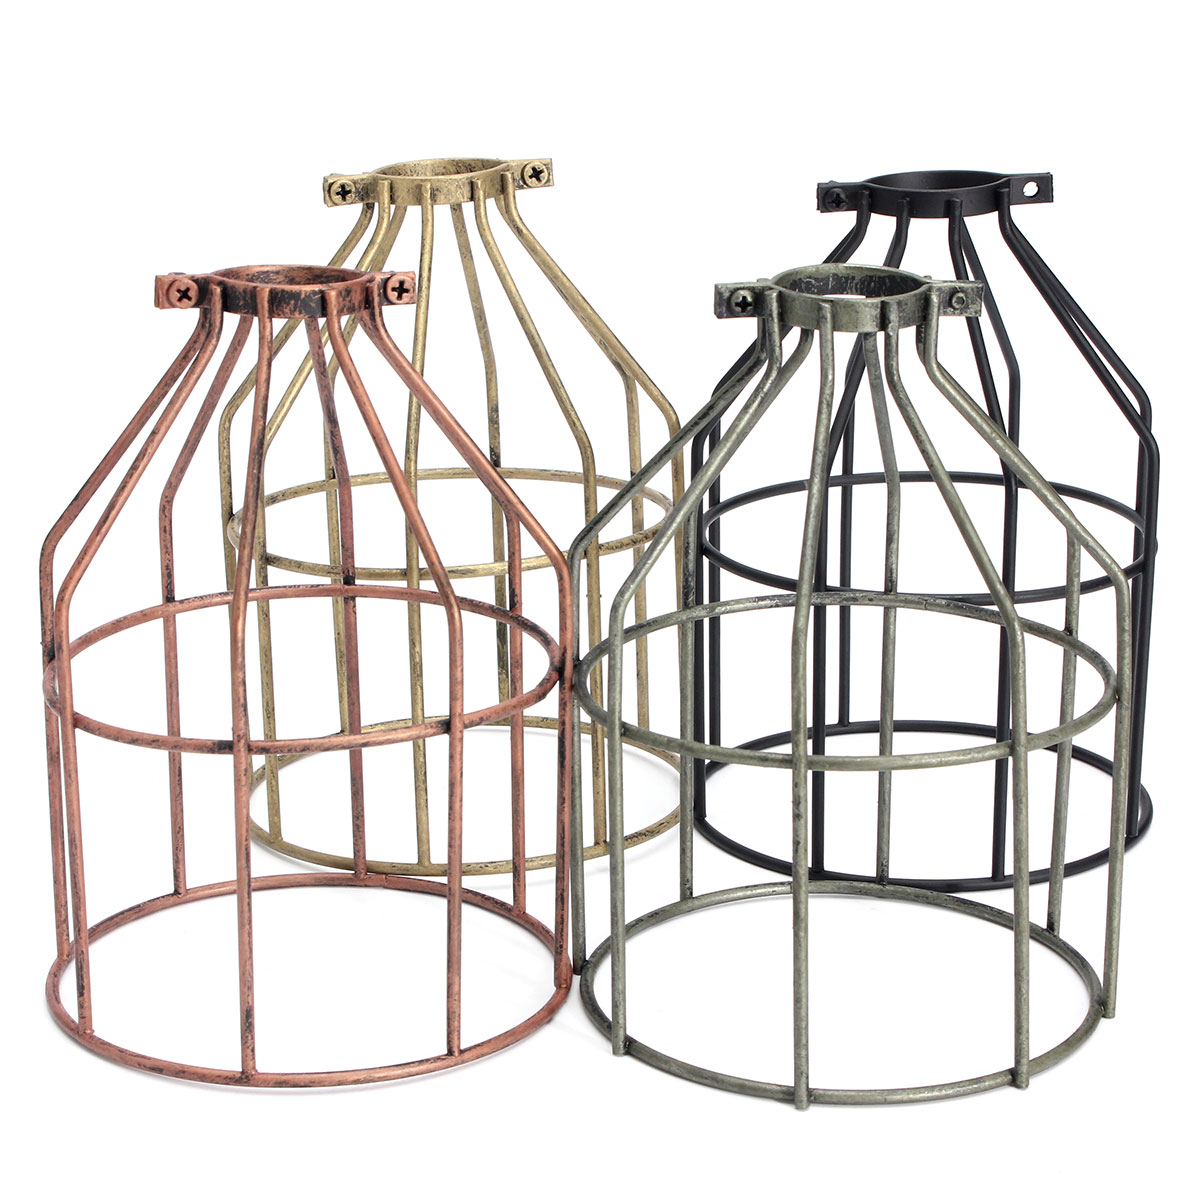 E27 Vintage Steel Bulb Holder Guard Clamp On Metal Lamp Cage Retro Trouble Light Industrial Lamp Covers Lamp Shades Lanterns